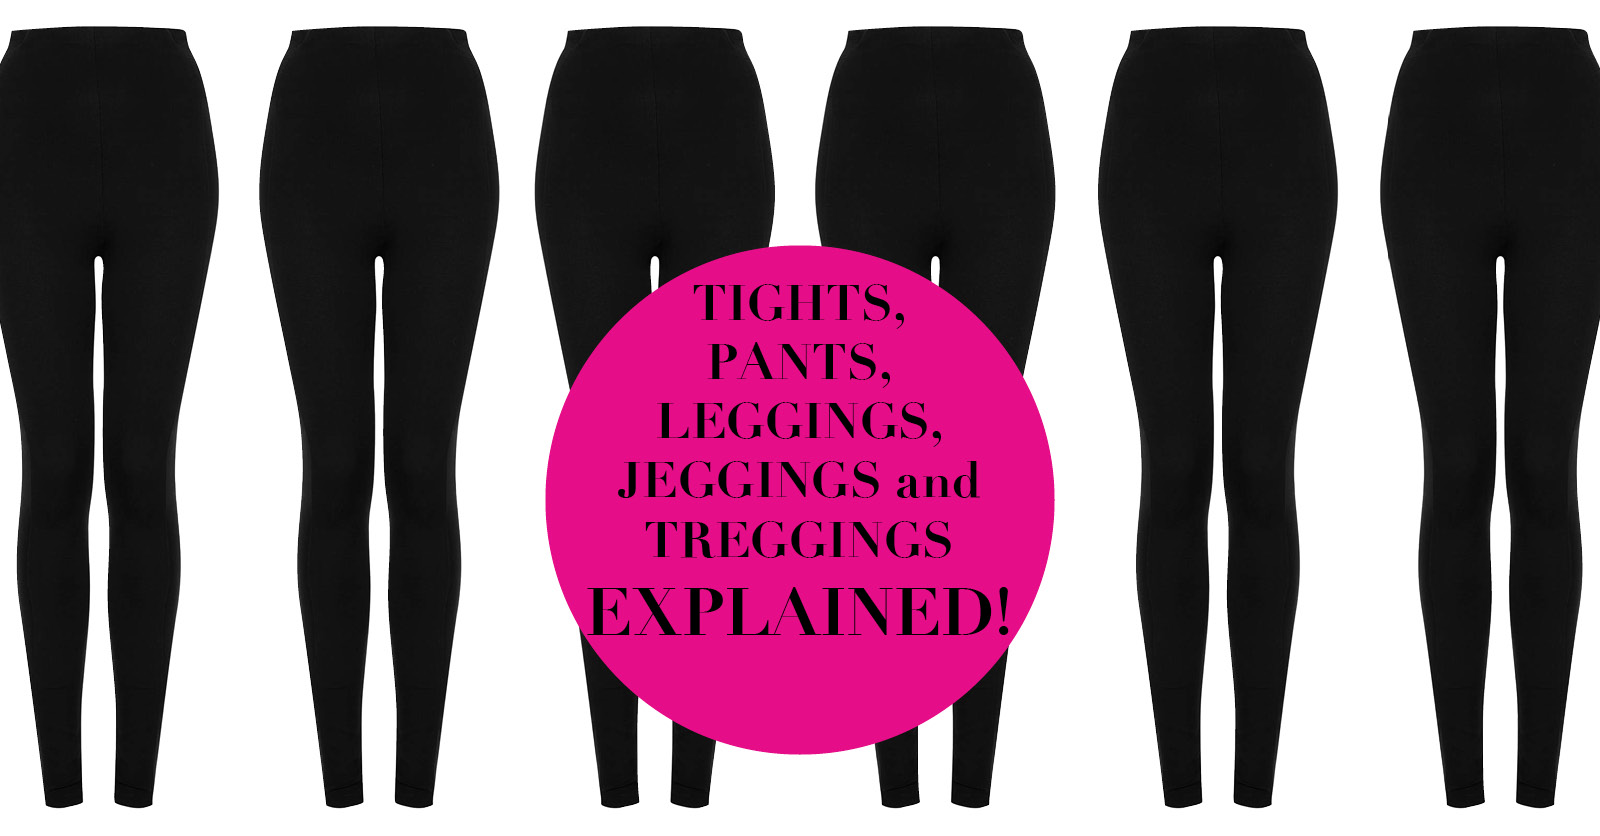 Tights, Pants, Leggings, Jeggings and Treggings Explained!